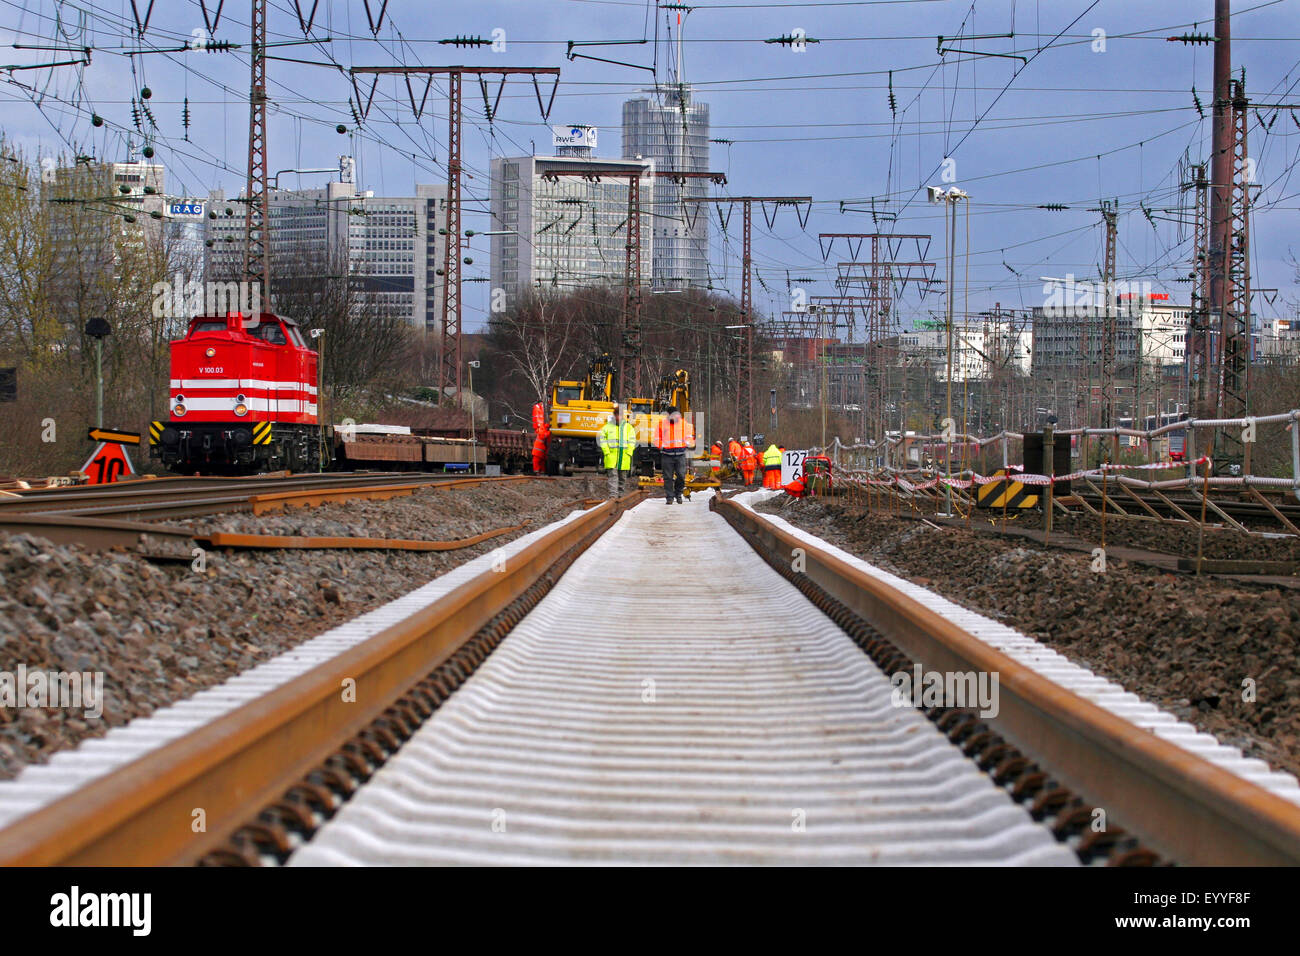 track construction work, new trackbed, Germany - Stock Image